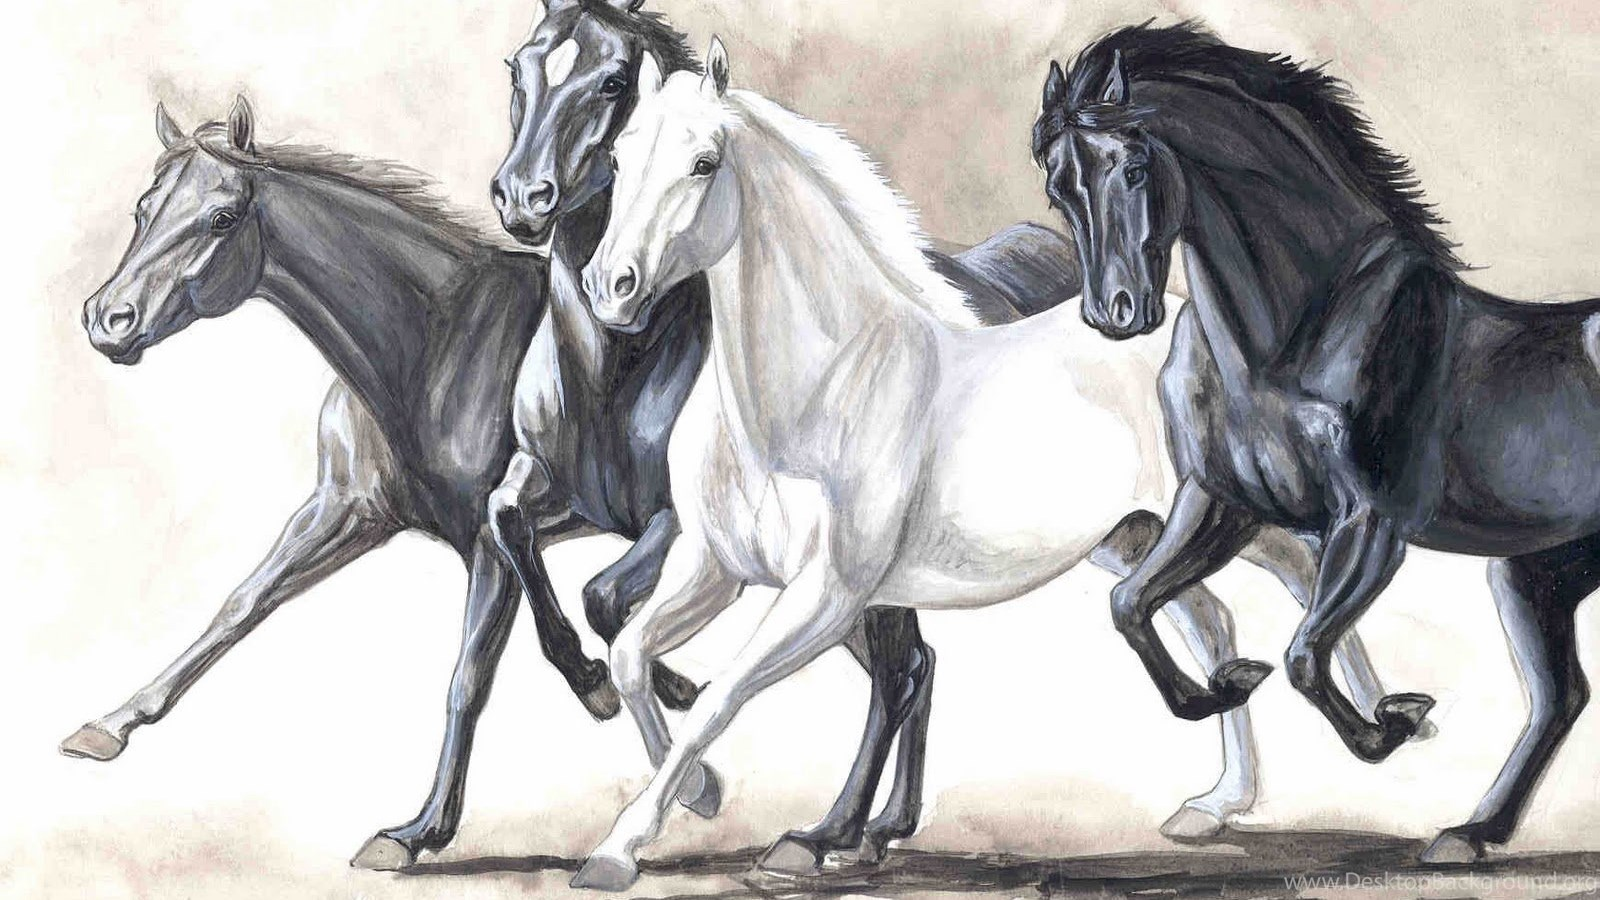 Free Download Art White Horse Painting Digital Horse Wallpapers 03 Desktop Background